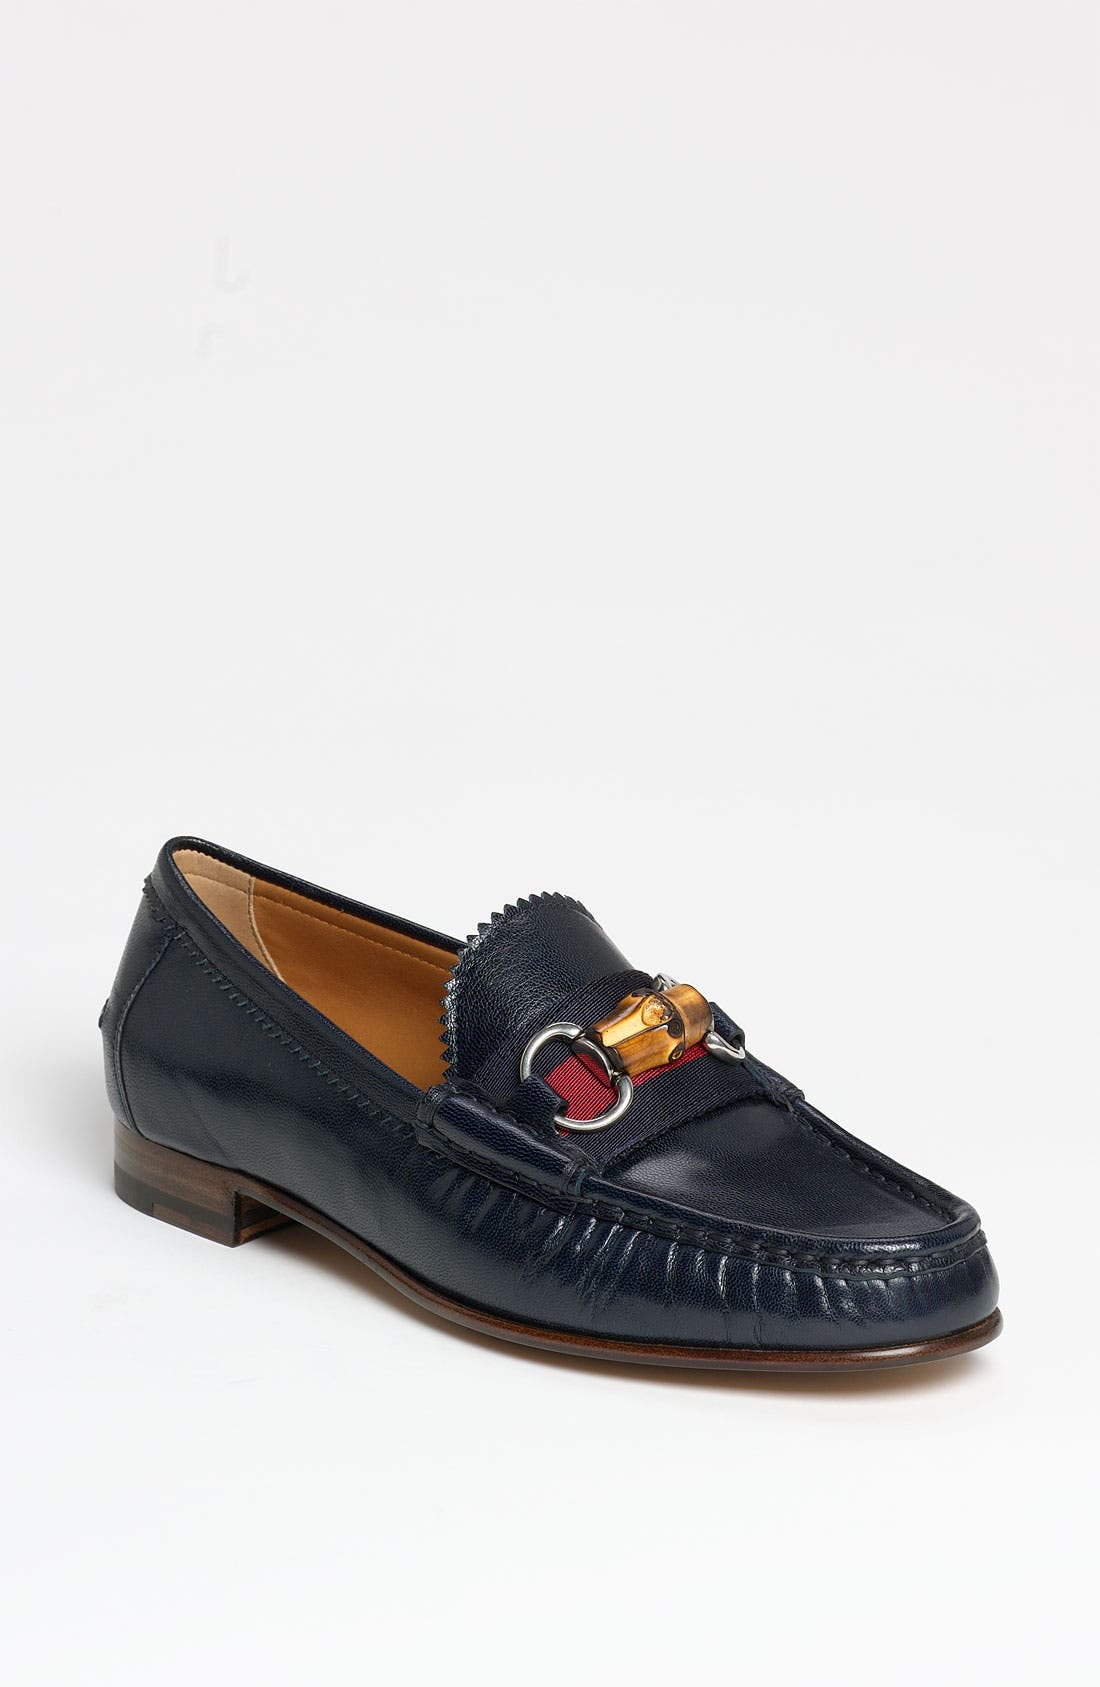 Main Image - Gucci 'Clyde' Loafer